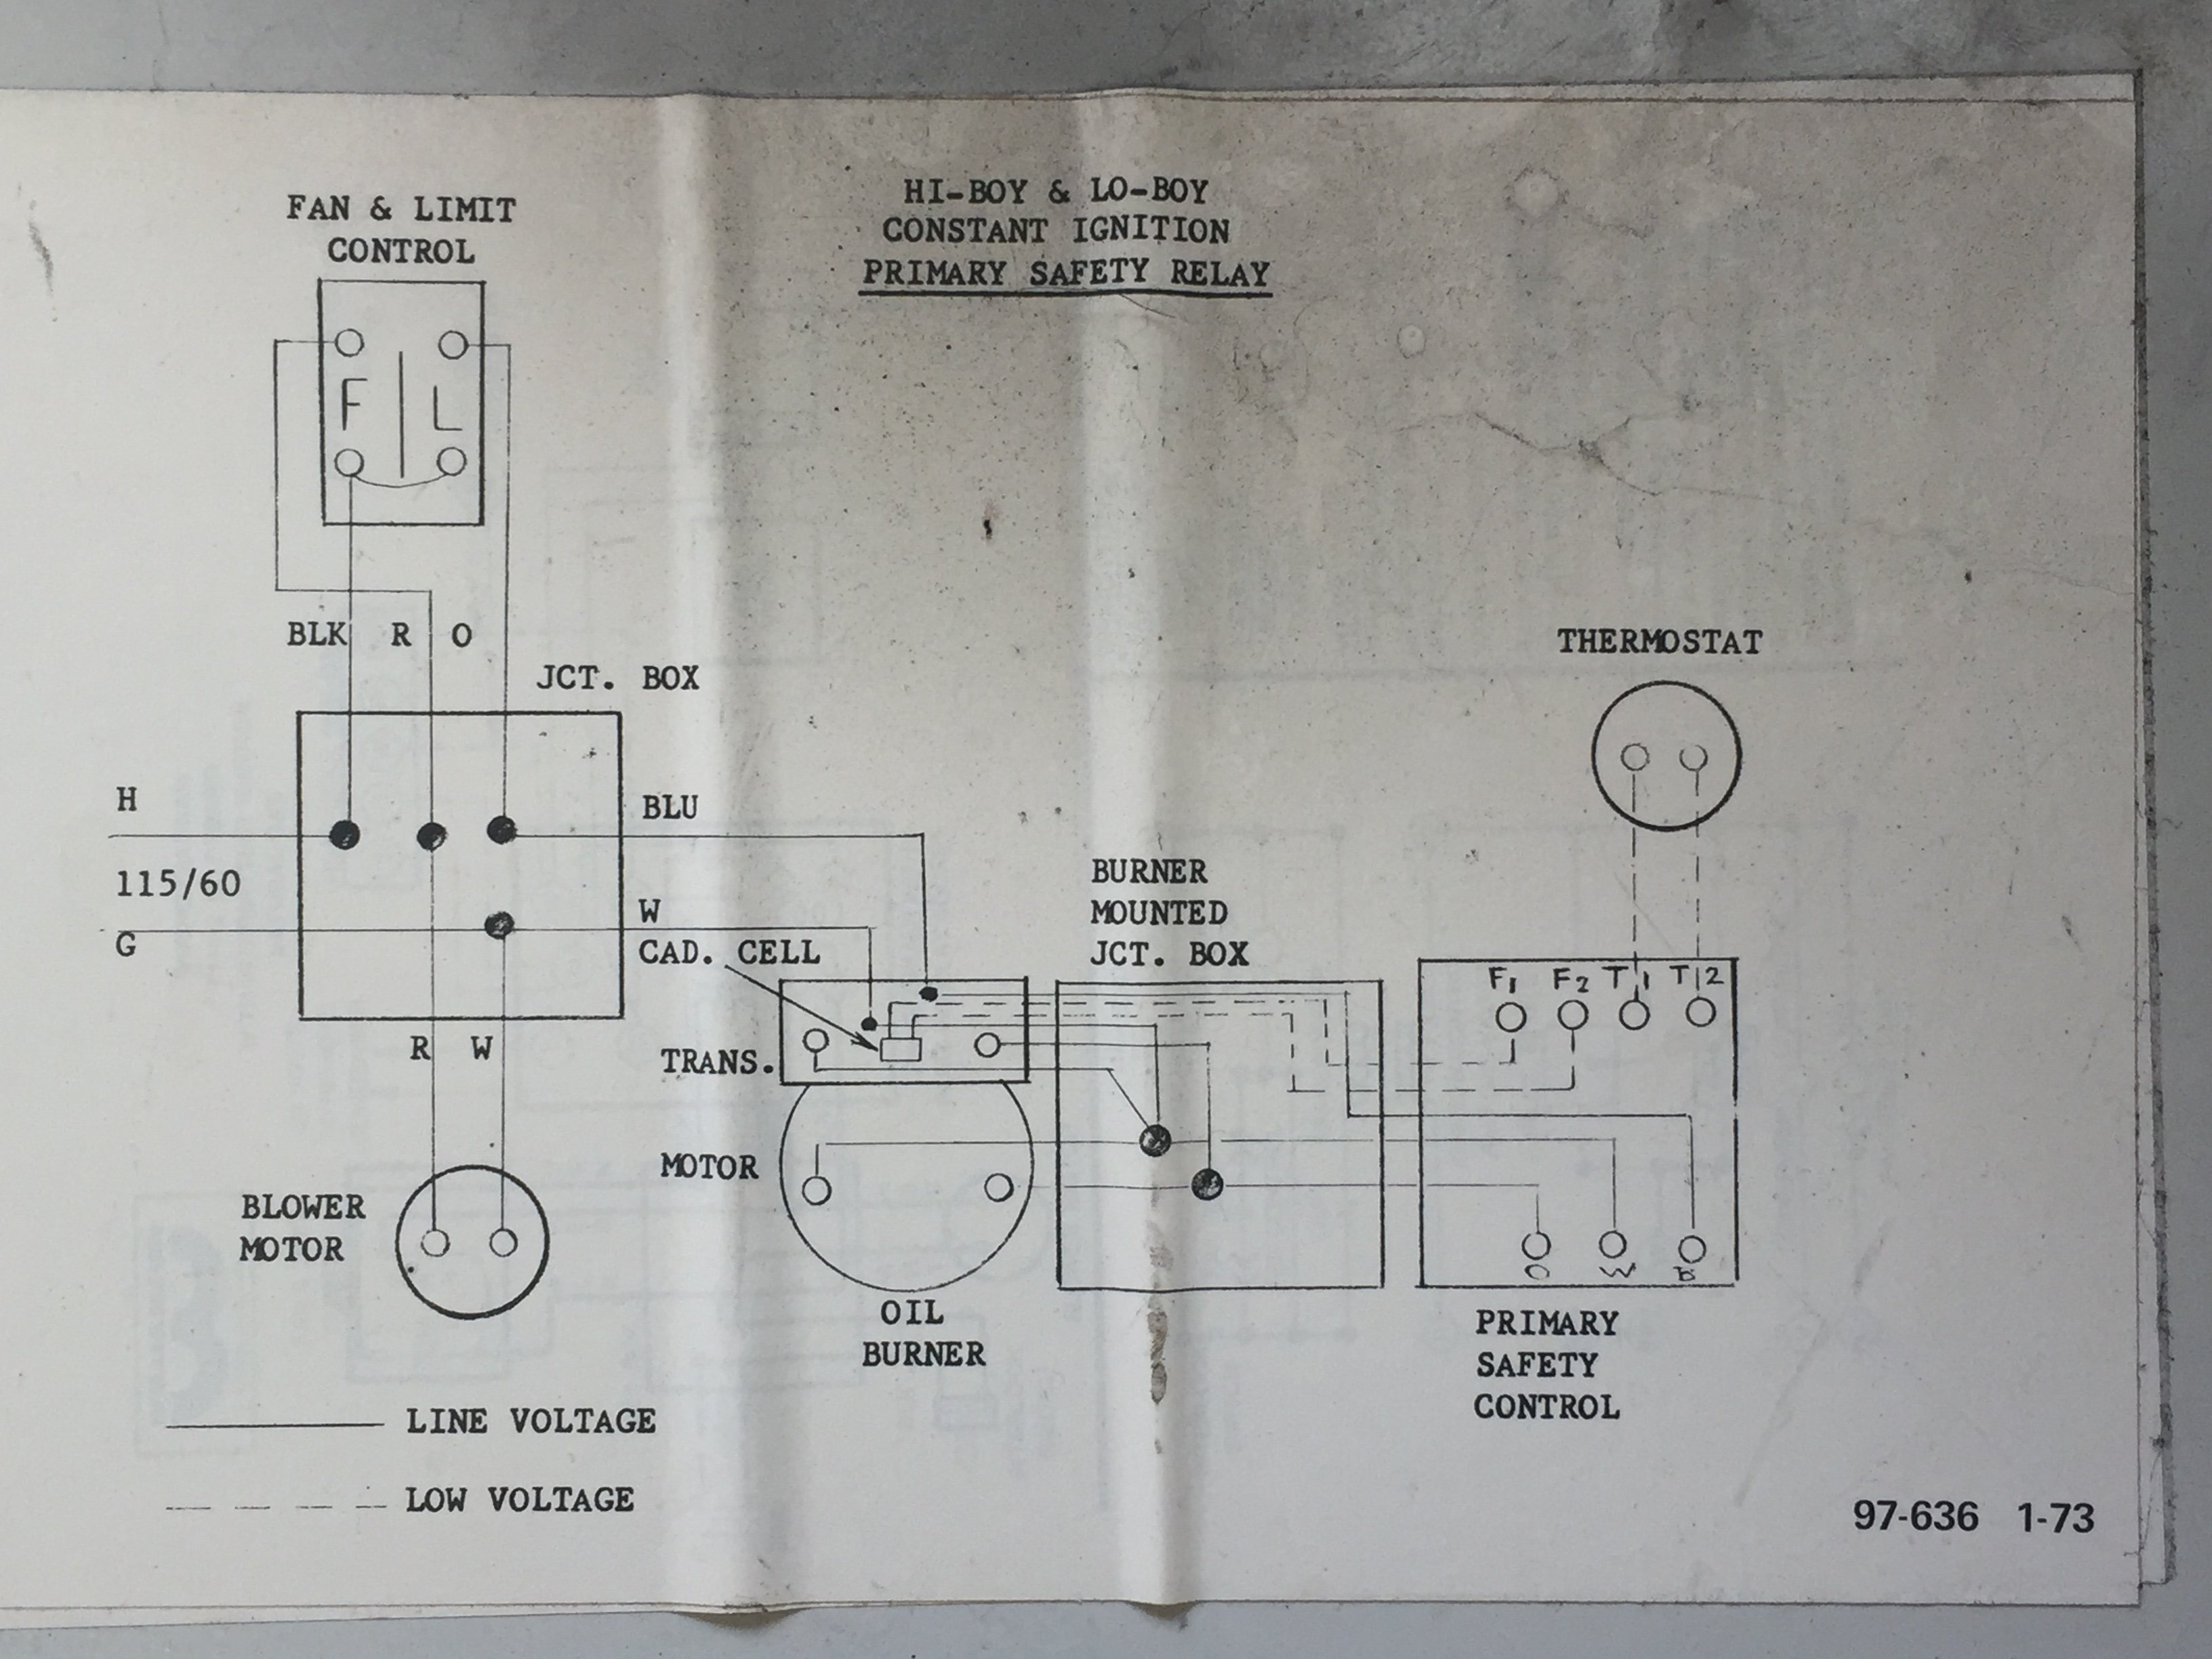 Honeywell L6006c 1018 Wiring Diagram Product Wiring Diagrams \u2022  Honeywell Boiler Relays Cad Cell Relay Wiring Diagram